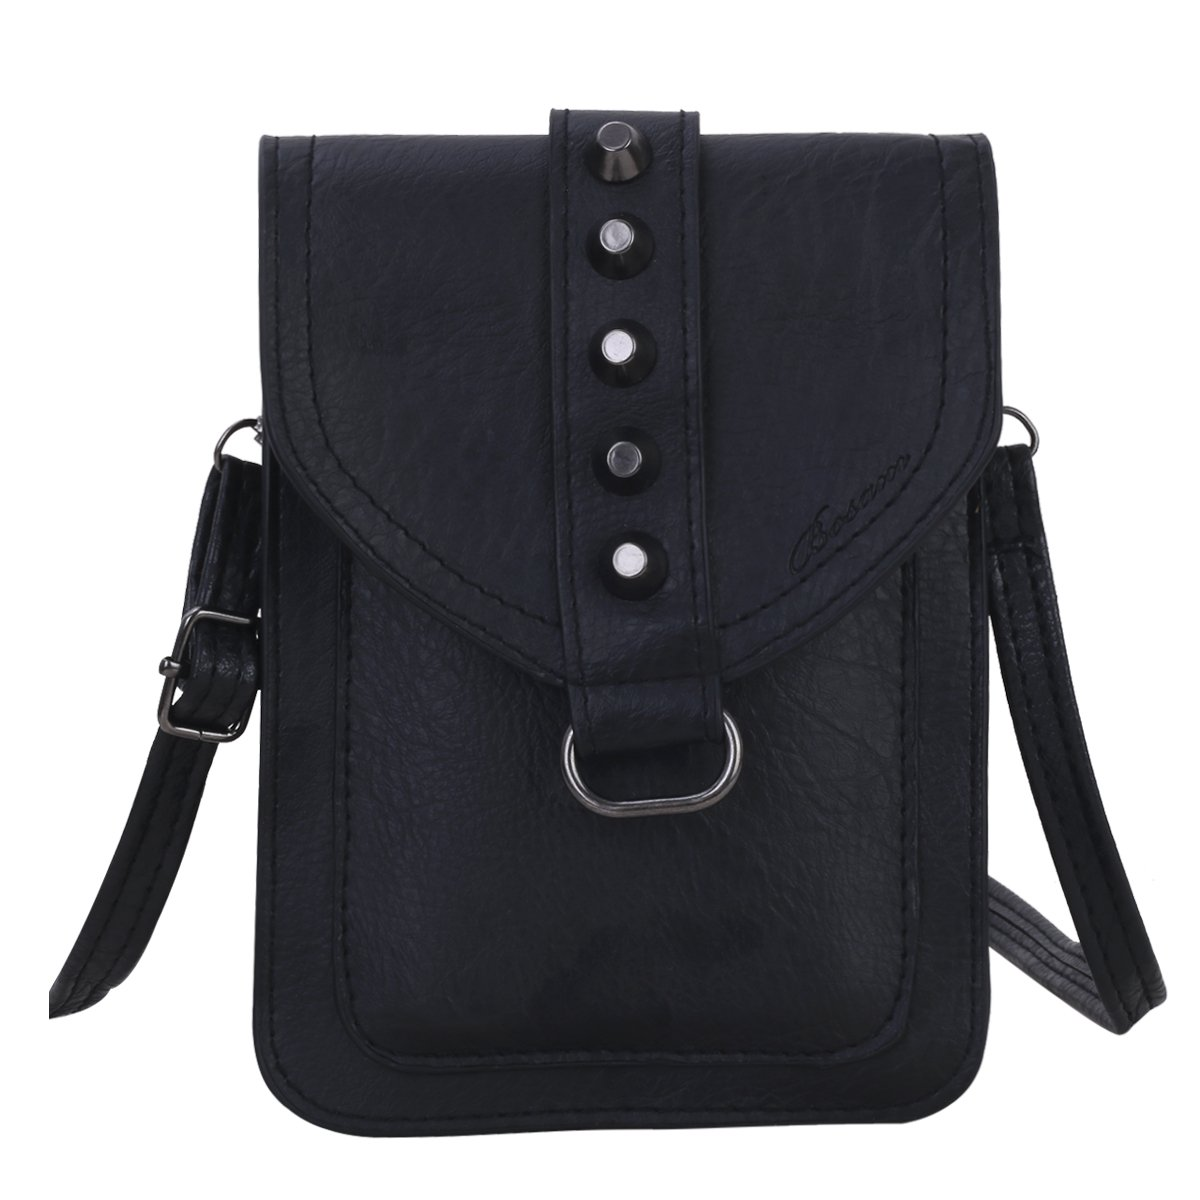 Bosam Roomy Crossbody woman Purse For Cellphone Iphone X 8 7 6 6s plus samsung galaxy smartphones with shoulder Strap(Black)